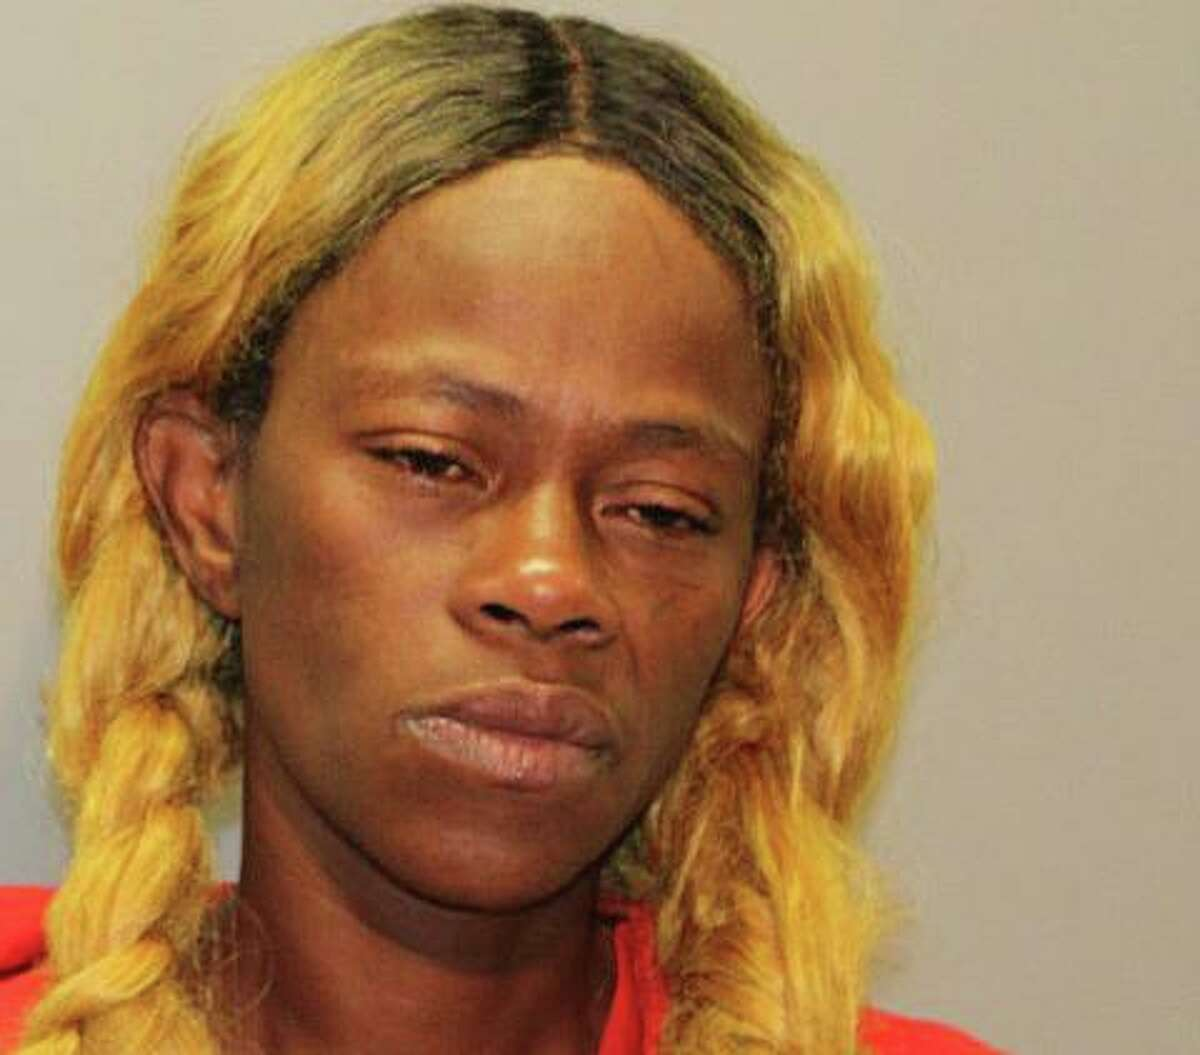 Iris Rena Blye, who was listed in the report as experiencing homeless, was charged with third-degree criminal mischief, third-degree assault, disorderly conduct and second-degree intimidation based on bigotry or bias.